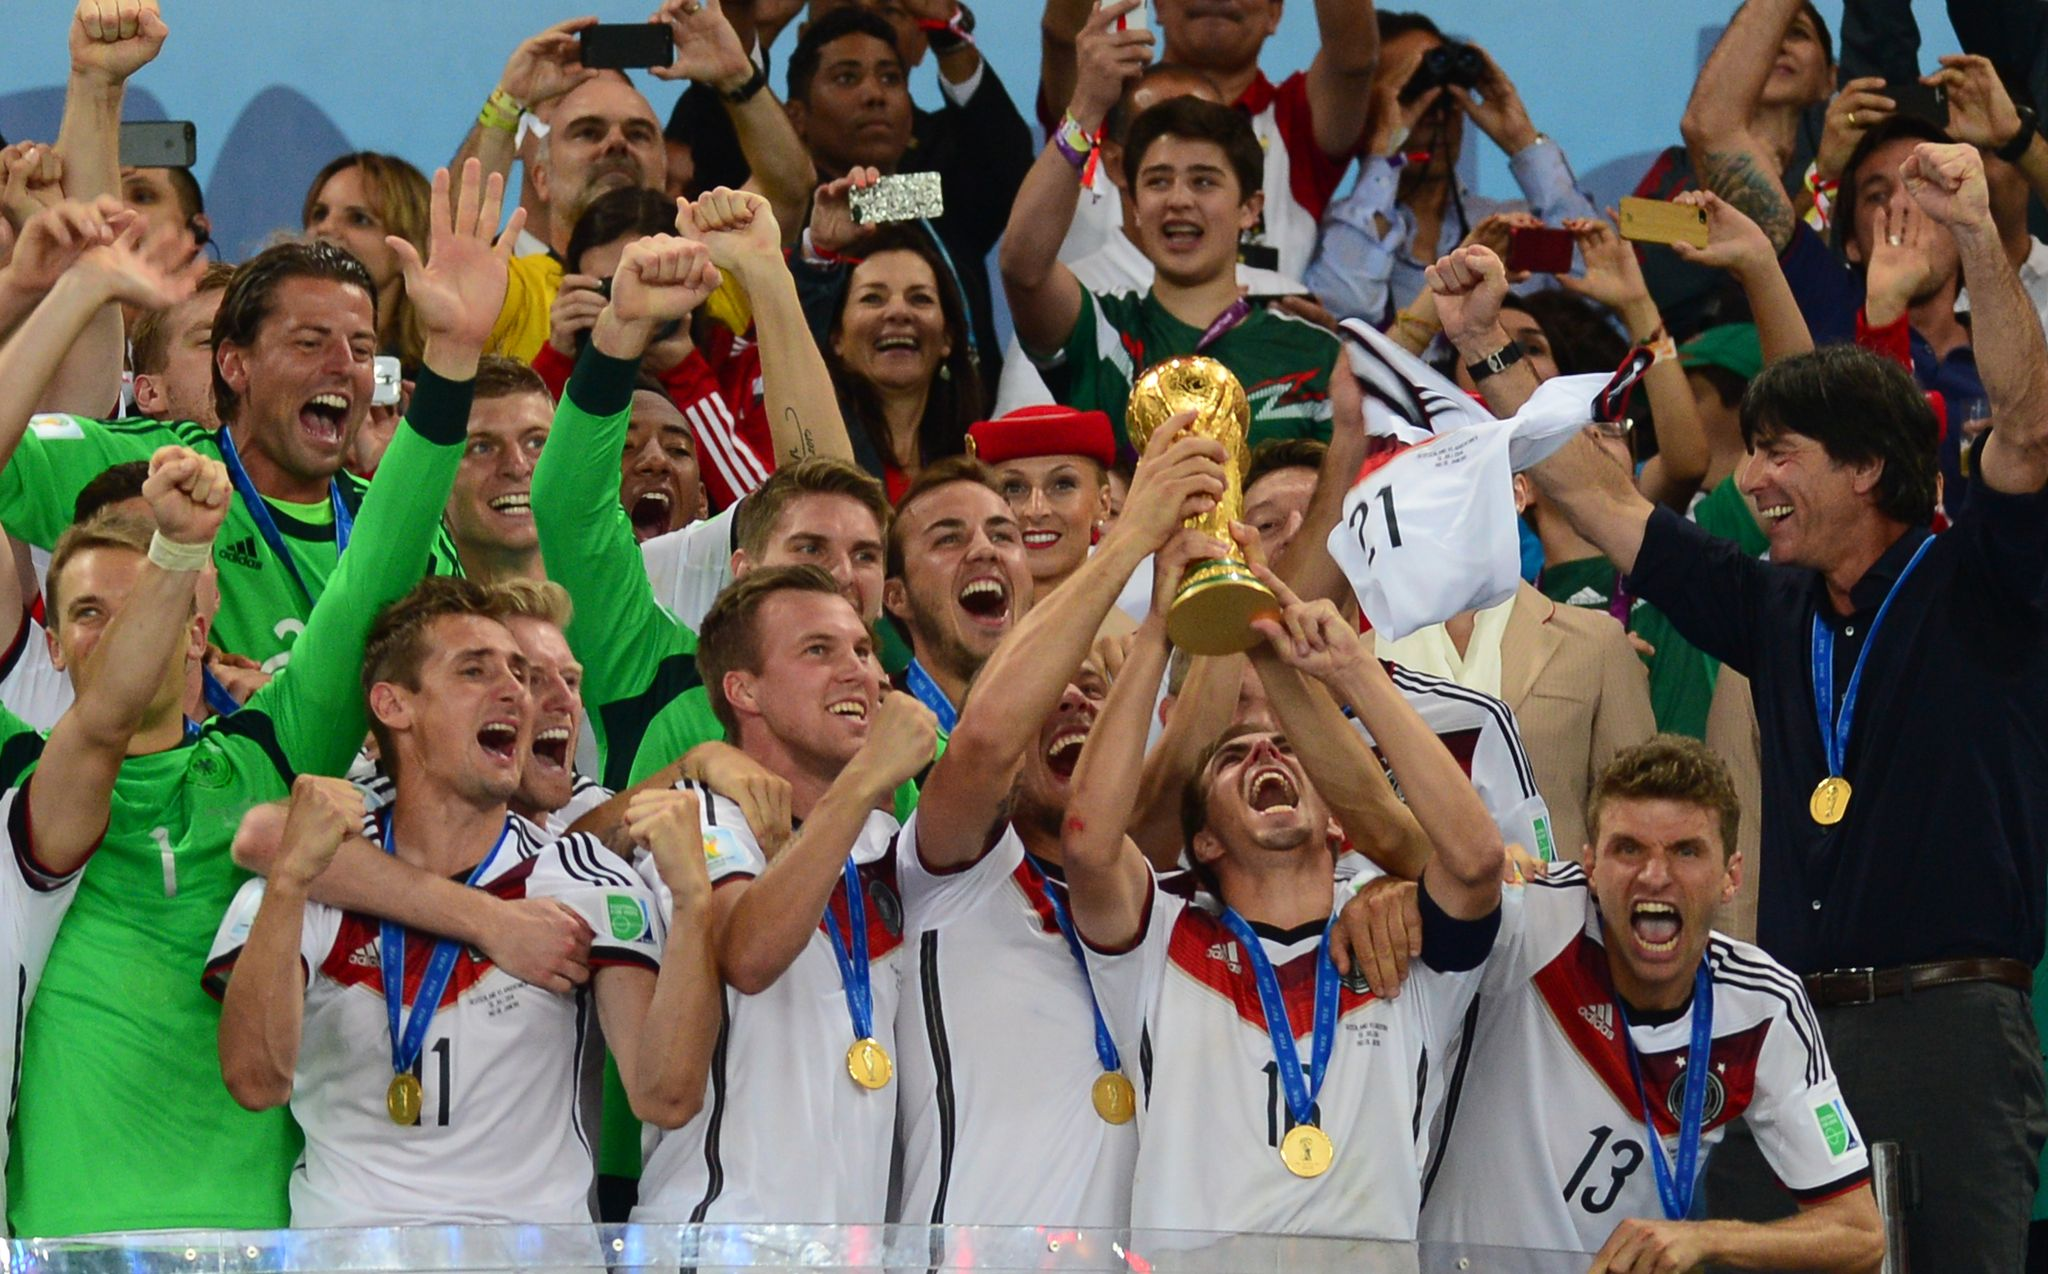 Germany national football team holding the World Cup trophy